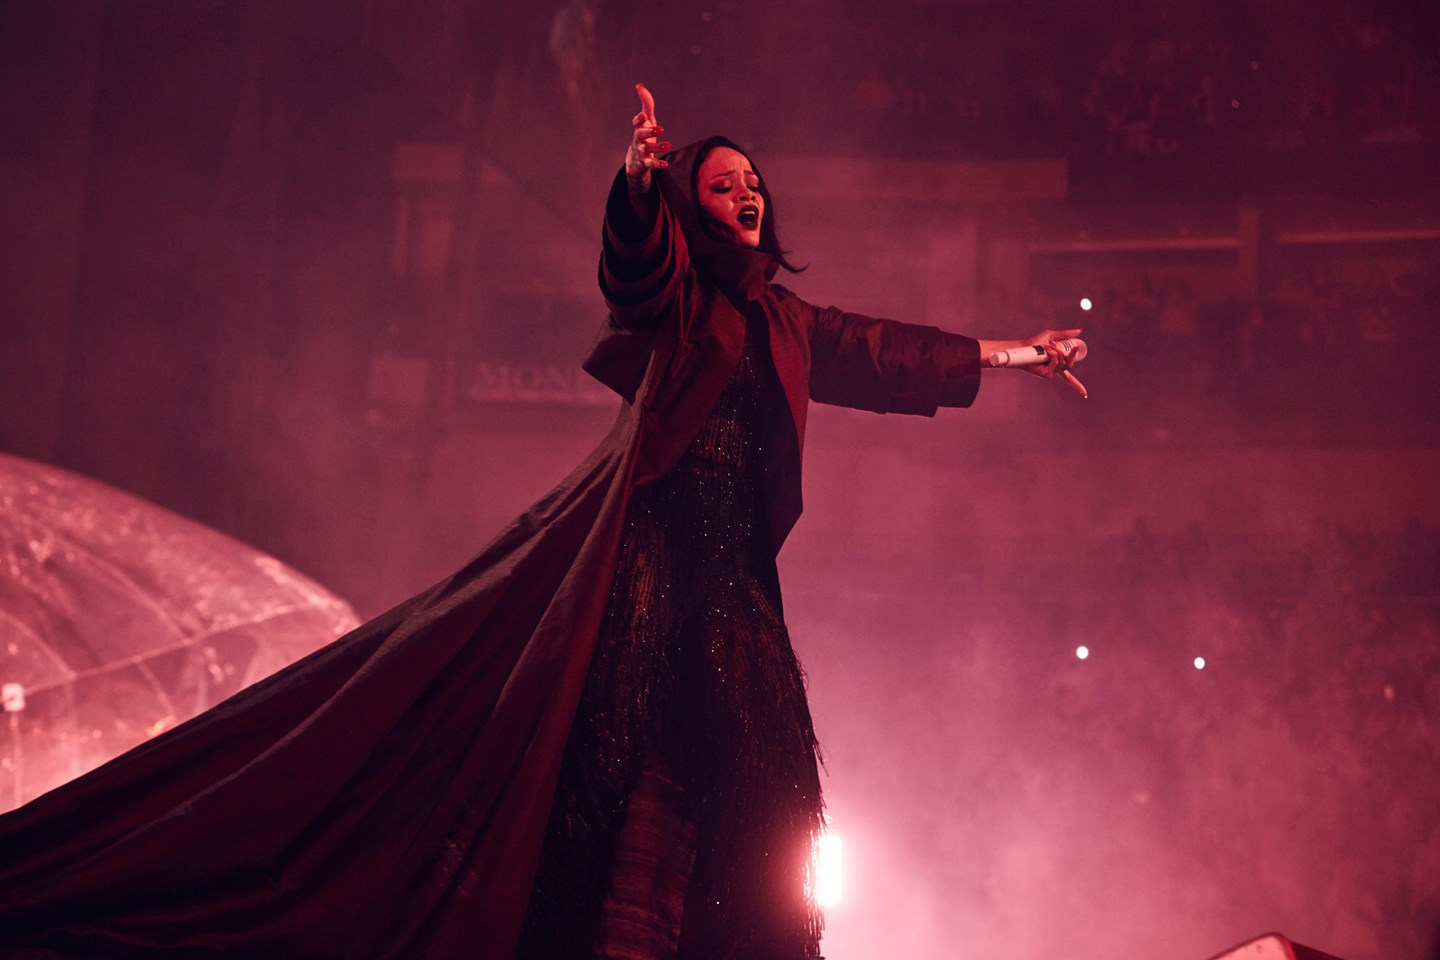 Rihanna during her ANTI world tour wearing a bespoke Giorgio Armani outfit for her final act.